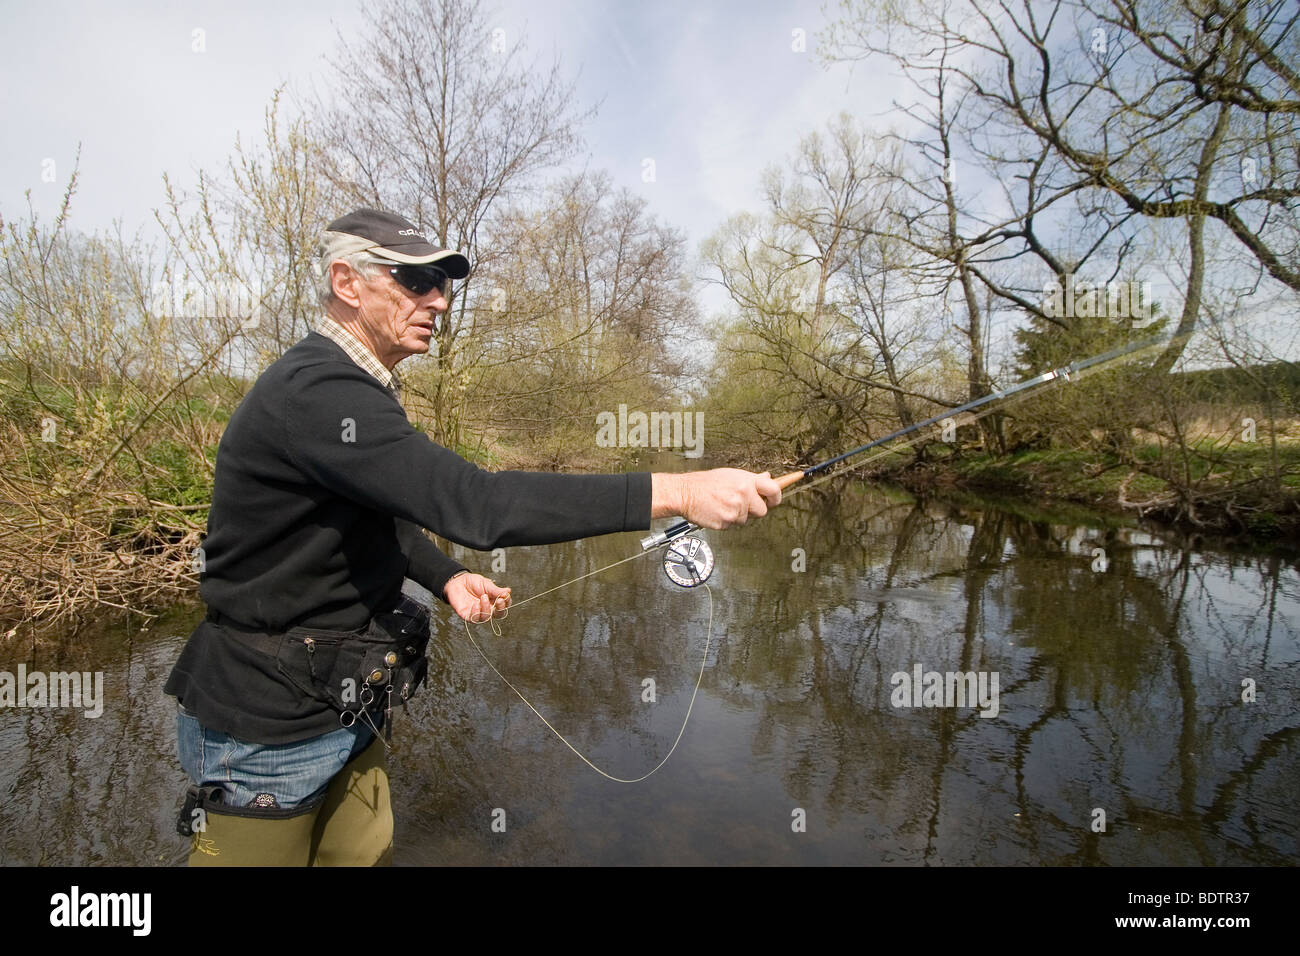 fly-fishing, fly-fischer, fishing rod and line, hinge, germany - Stock Image